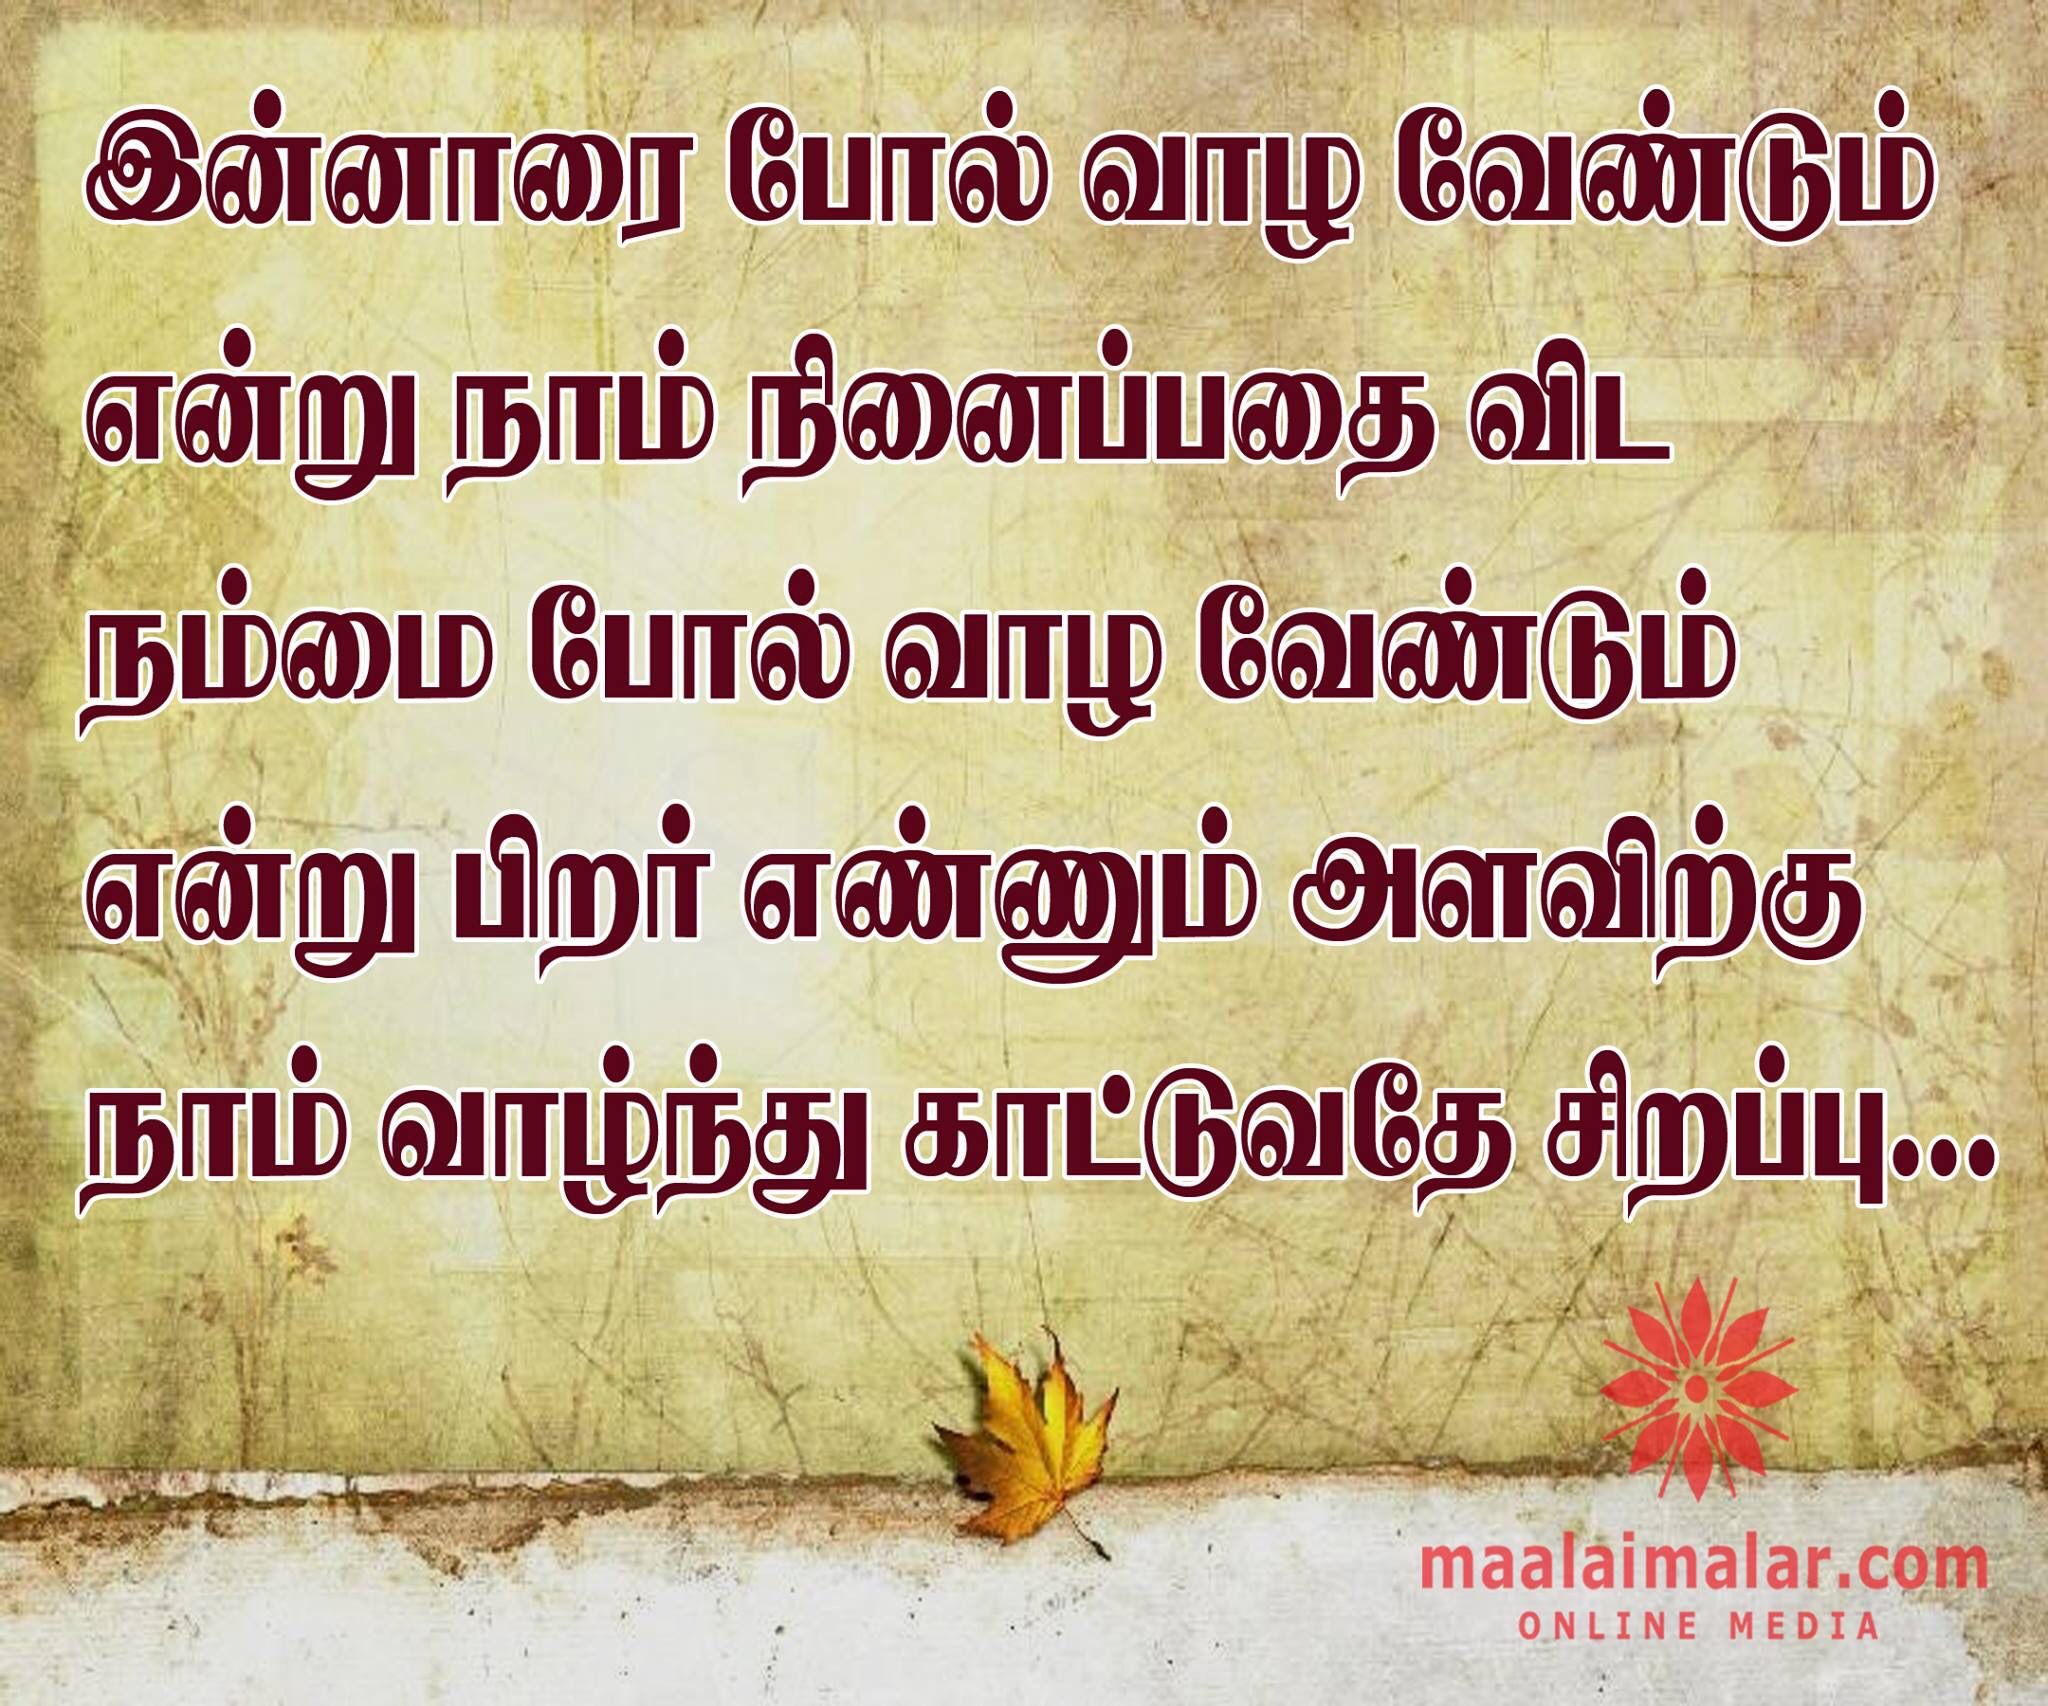 Pin By Karpagam On Tamil Teacher Quotes Education Quotes For Teachers Education Quotes